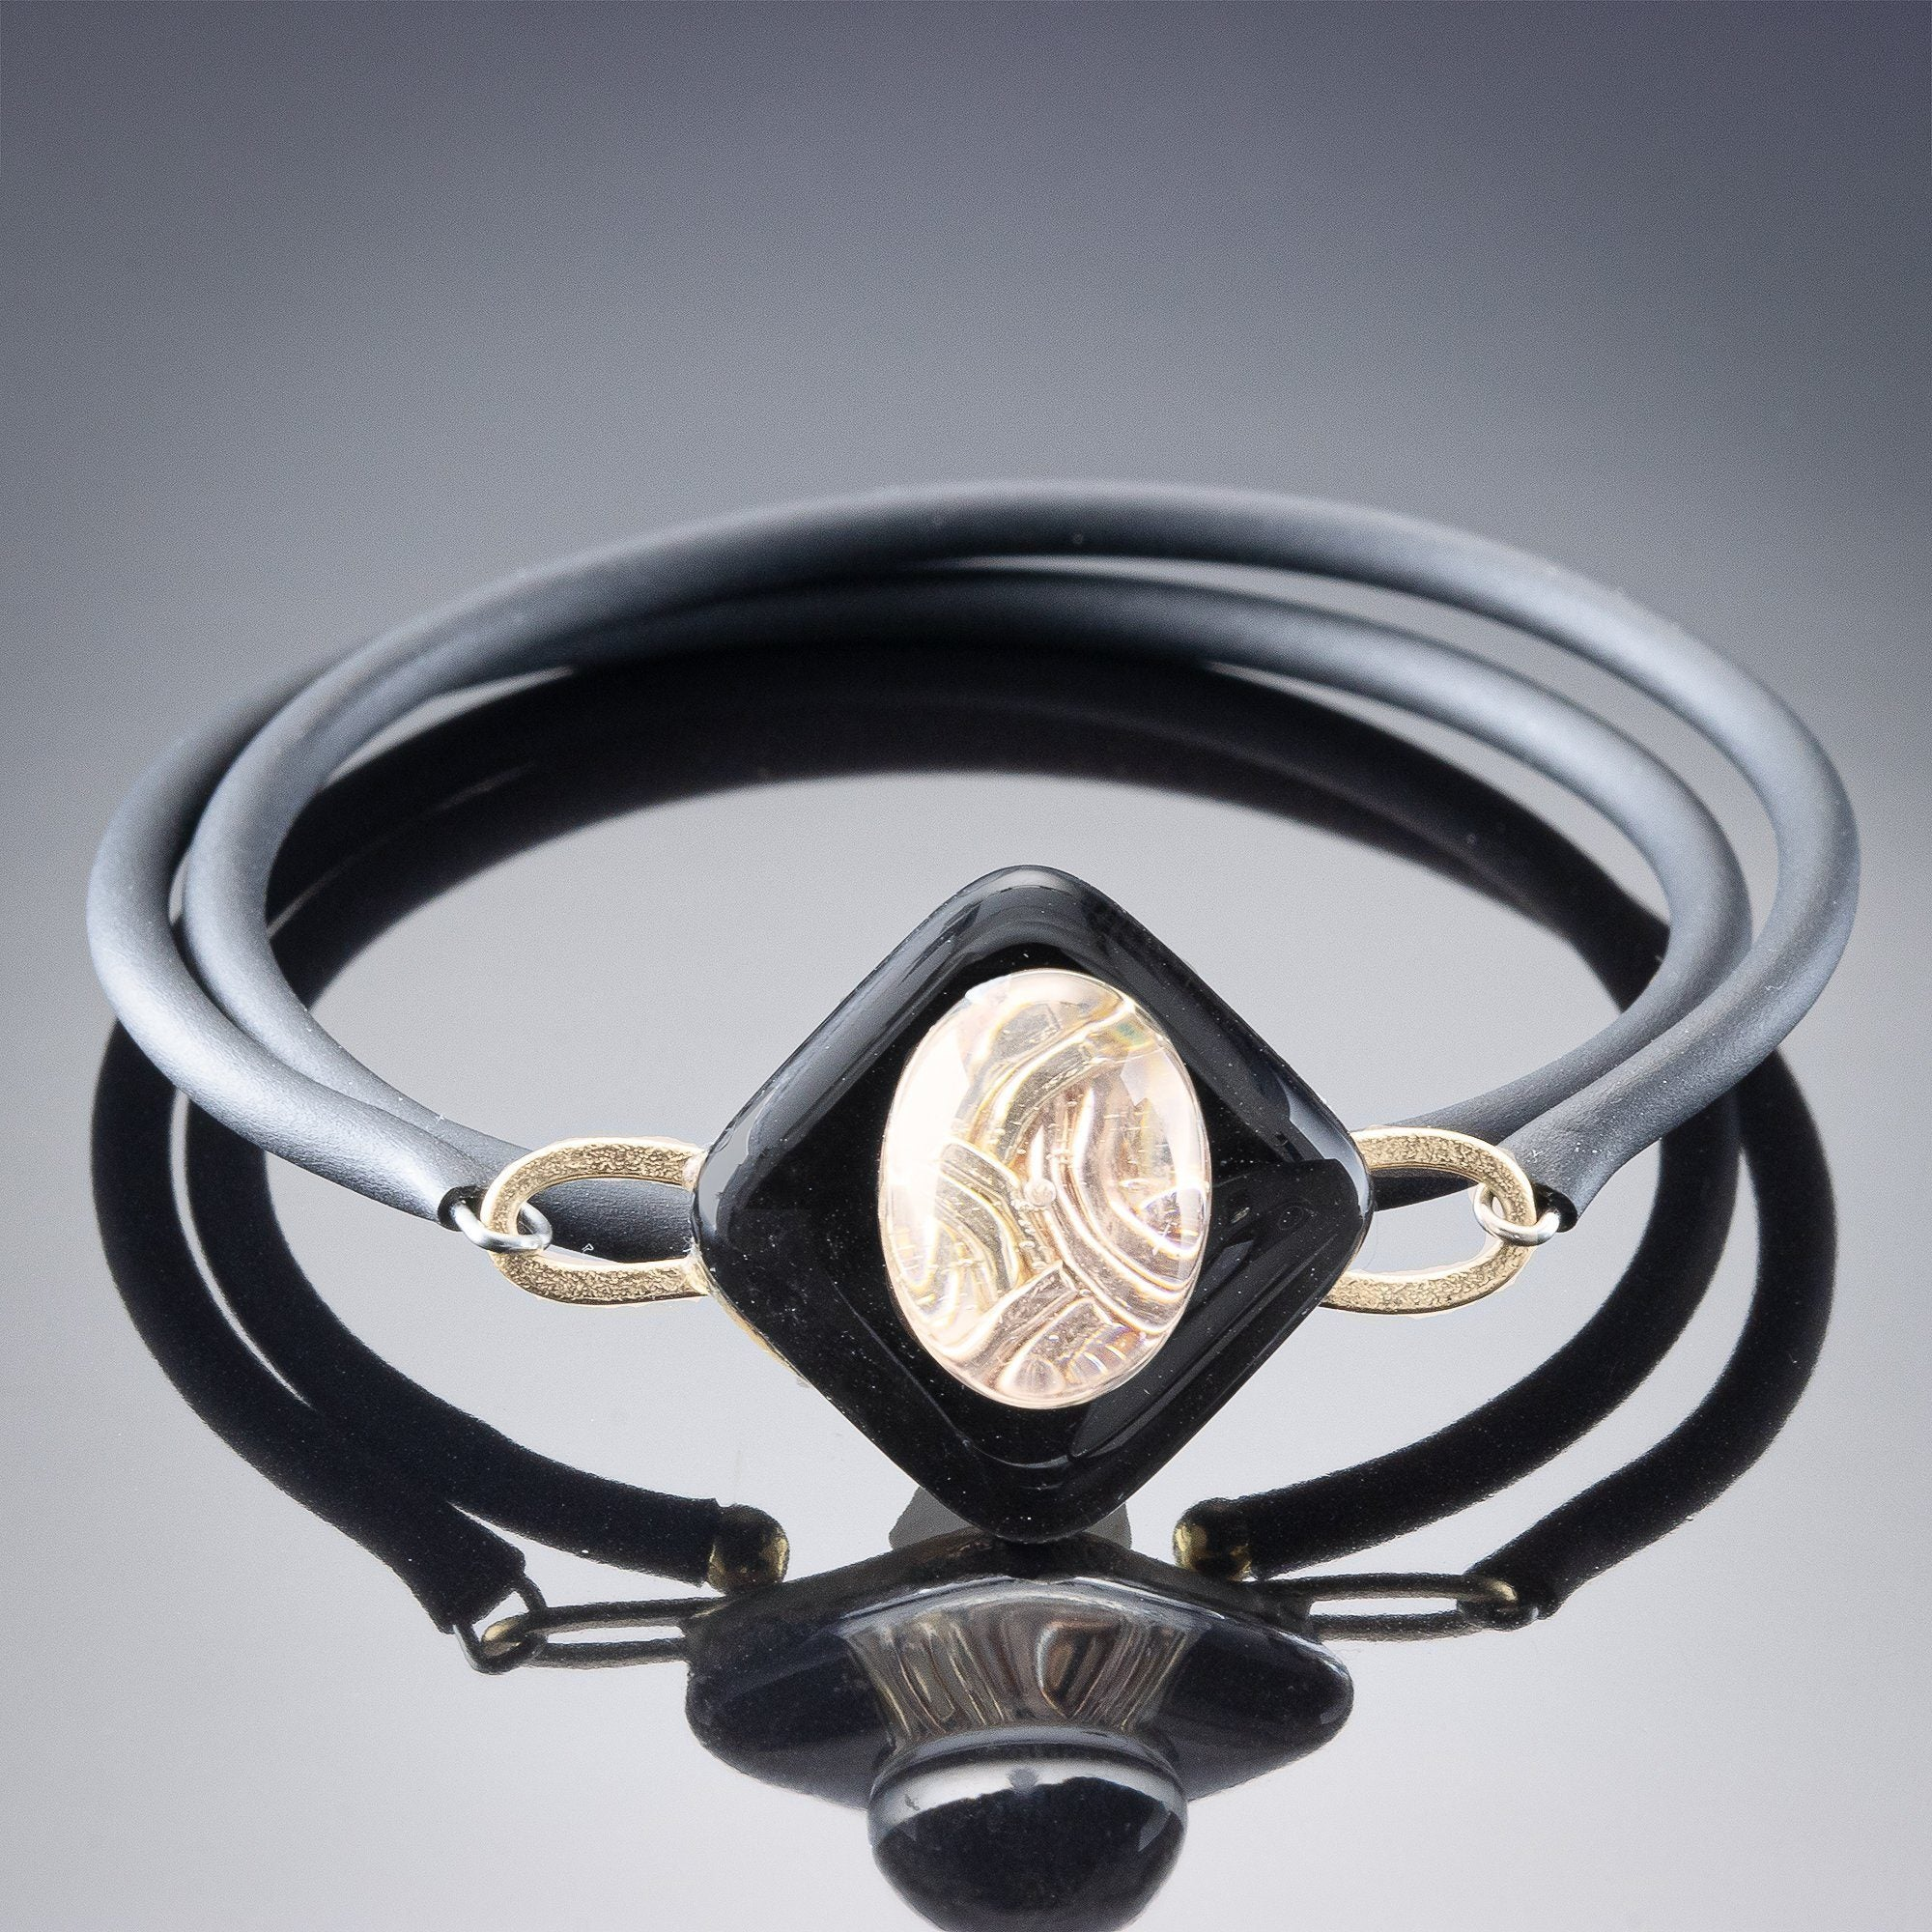 Handmade Wrap Bracelet by Tahmi - A handmade jewelry from women metal and glass using 14k gold filled or agentium .925 sterling silver. A classic minimalist jewelry design that is handcrafted one piece at a time. Perfect for everyday wear.